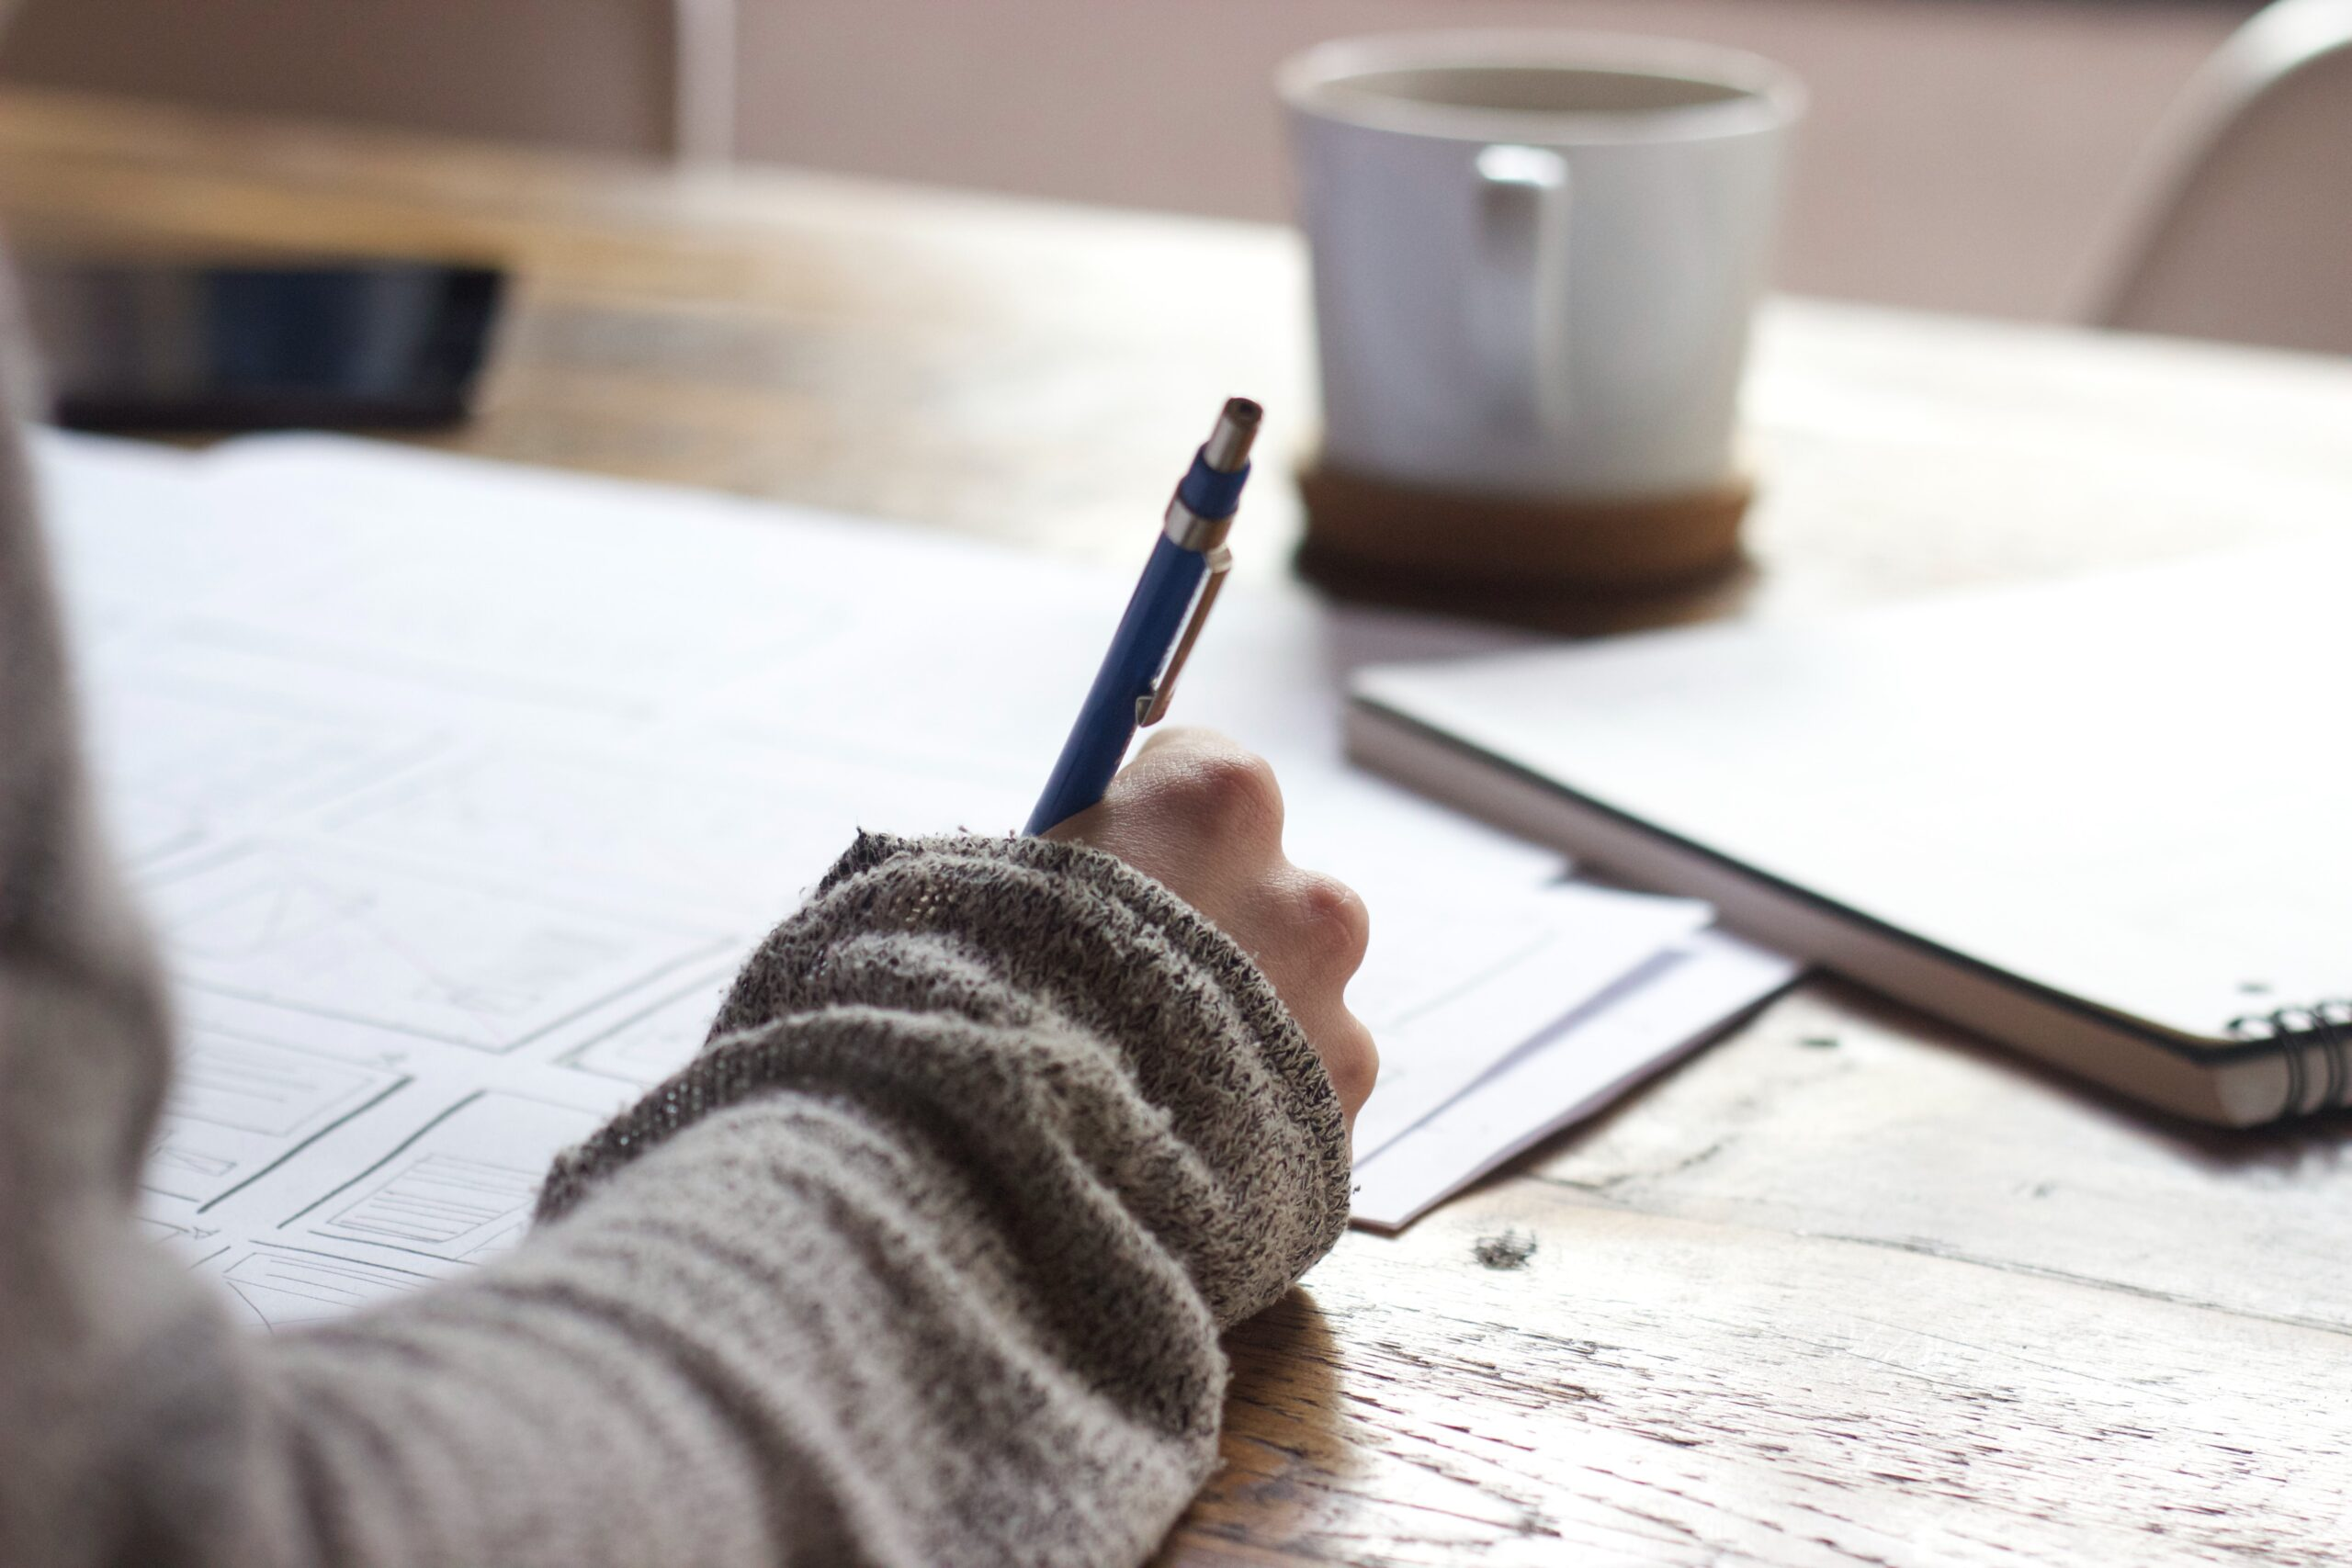 Study tips for notebook writin